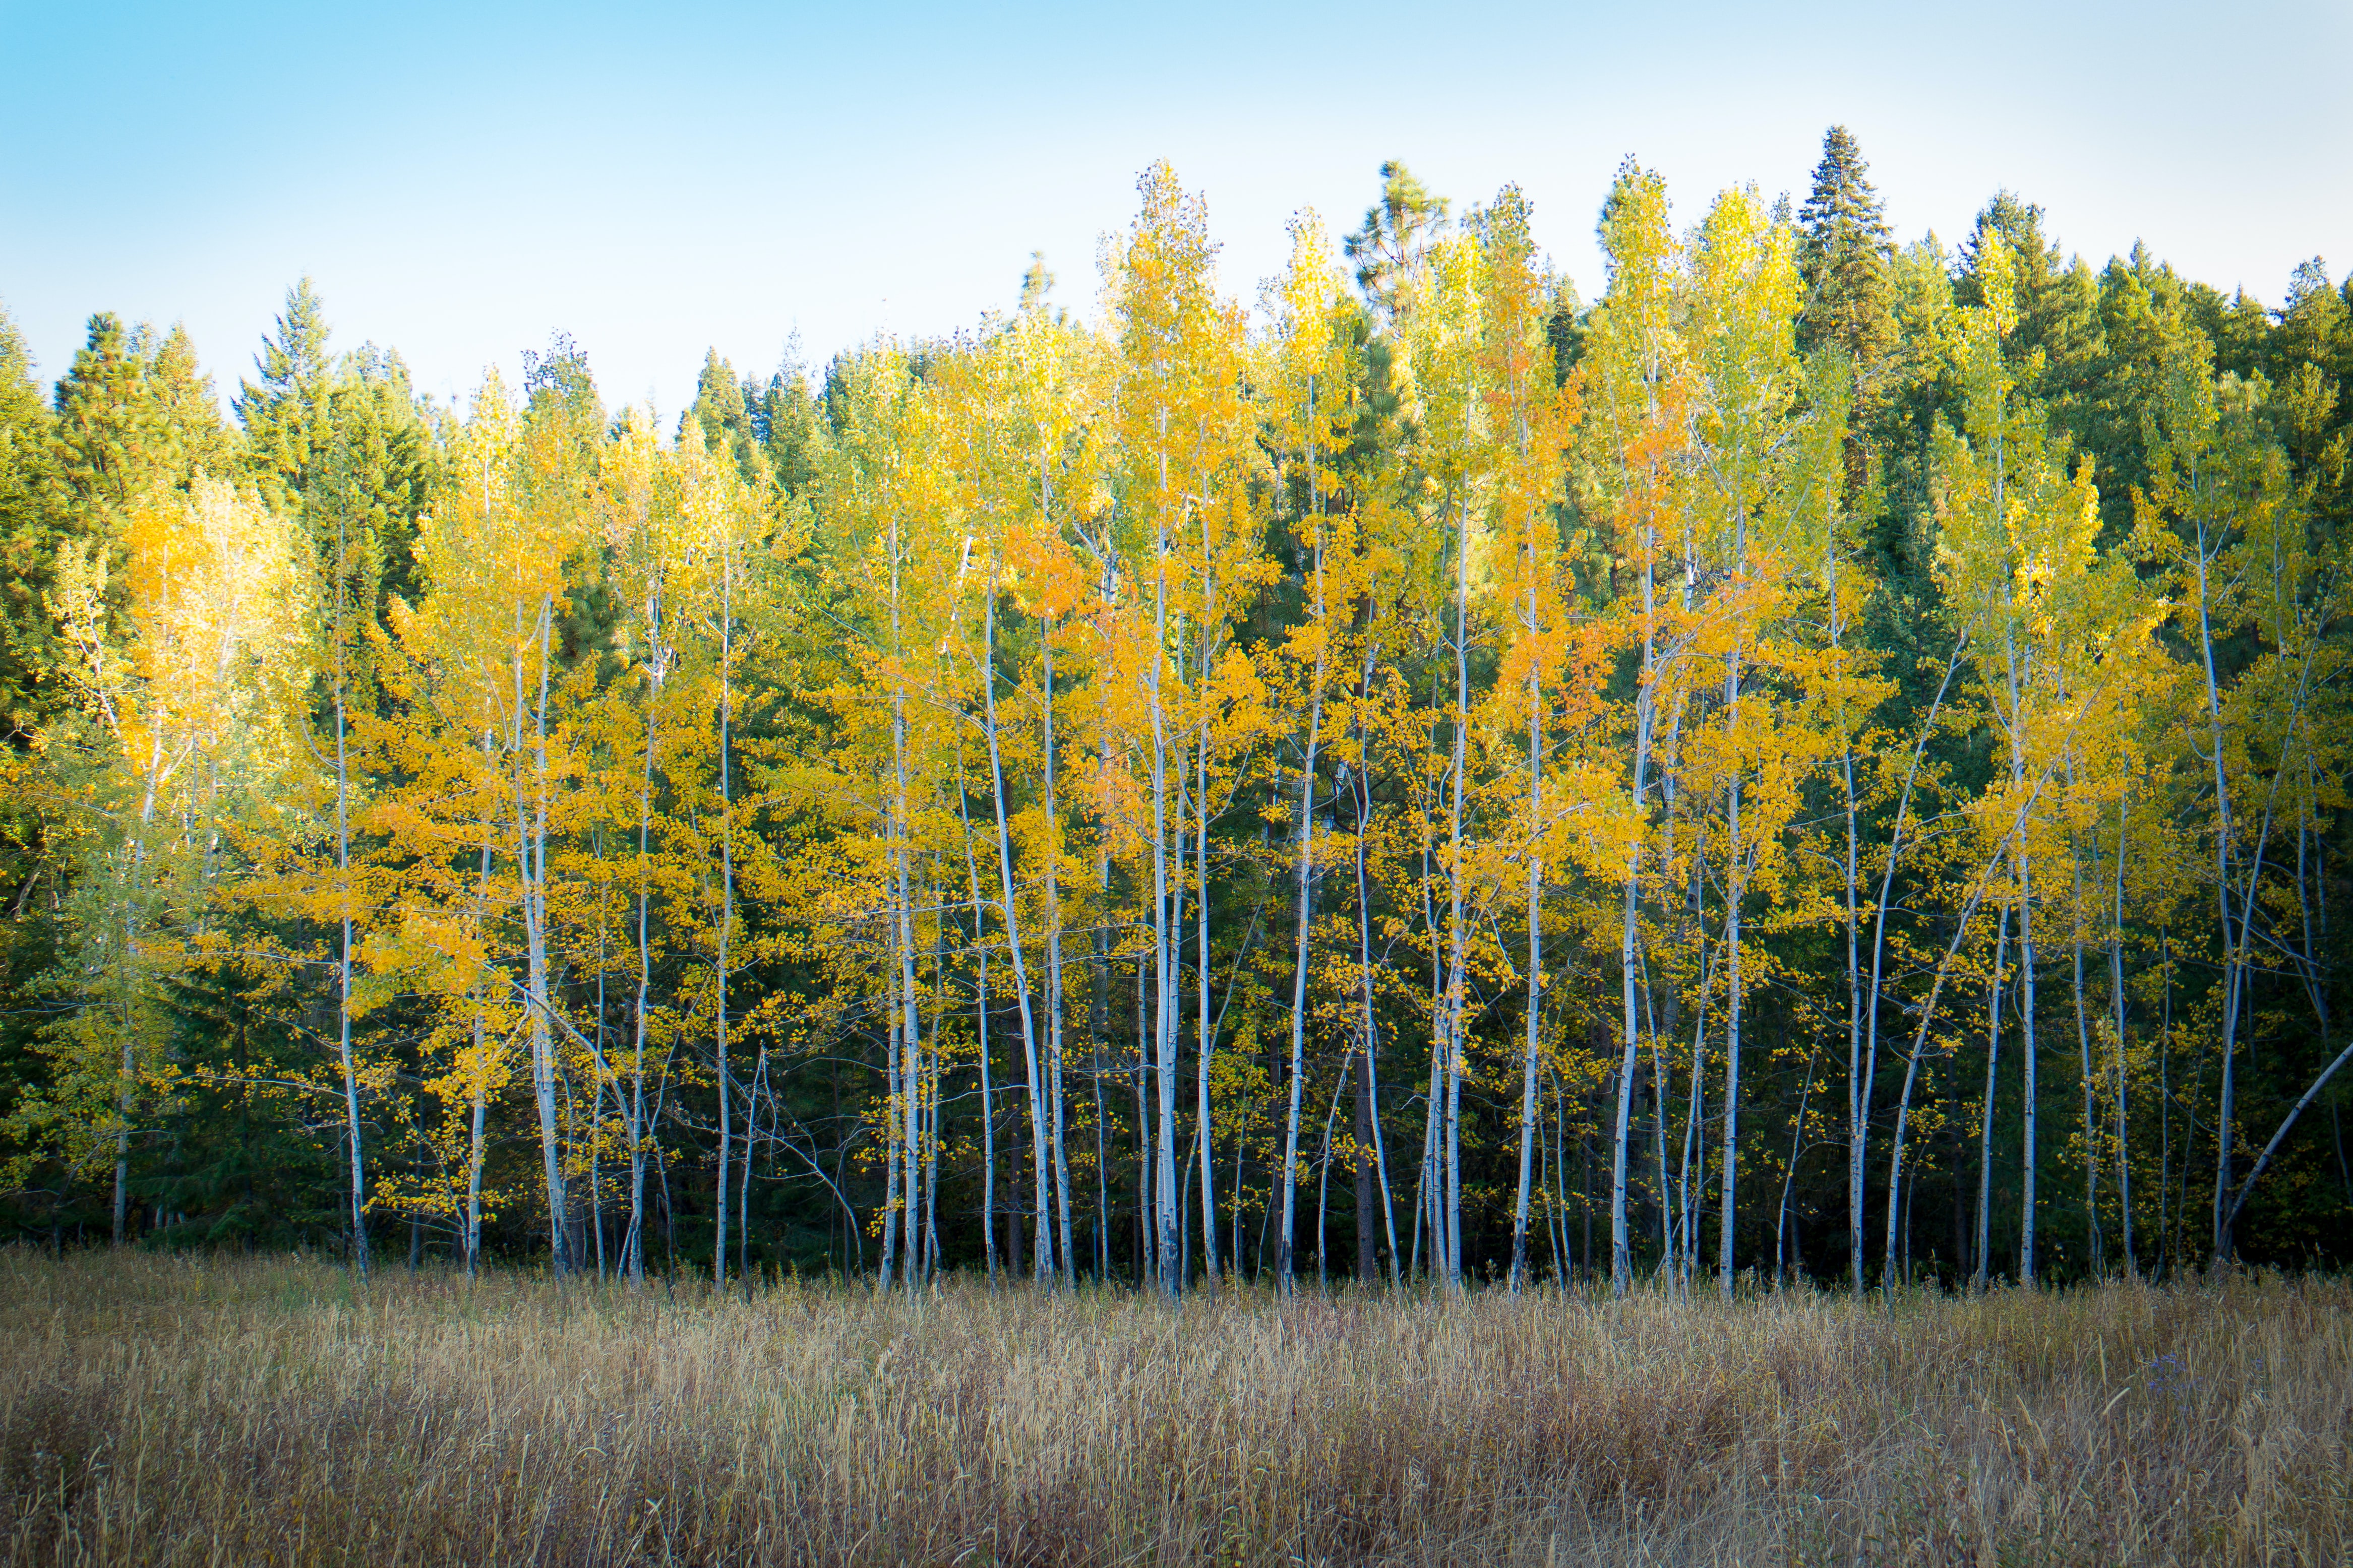 Bright yellow and green birch trees line the edge of a forest in Leavenworth